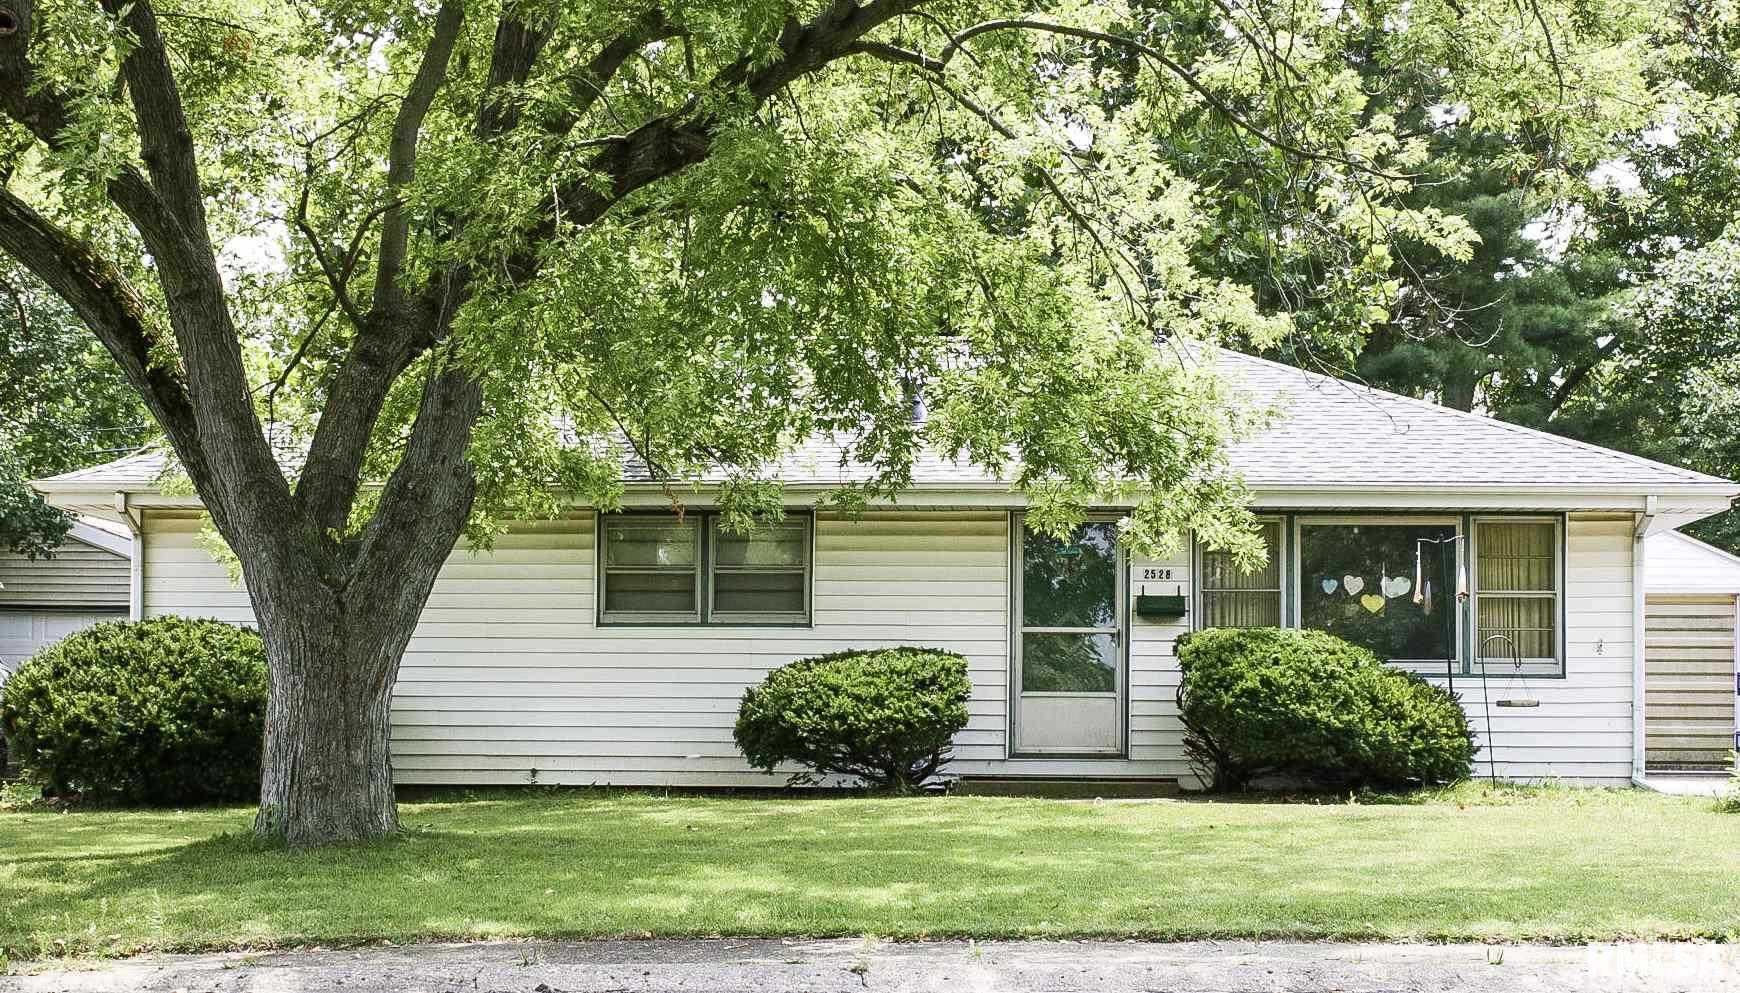 $59,000 - 3Br/1Ba -  for Sale in Newman Parkway, Peoria